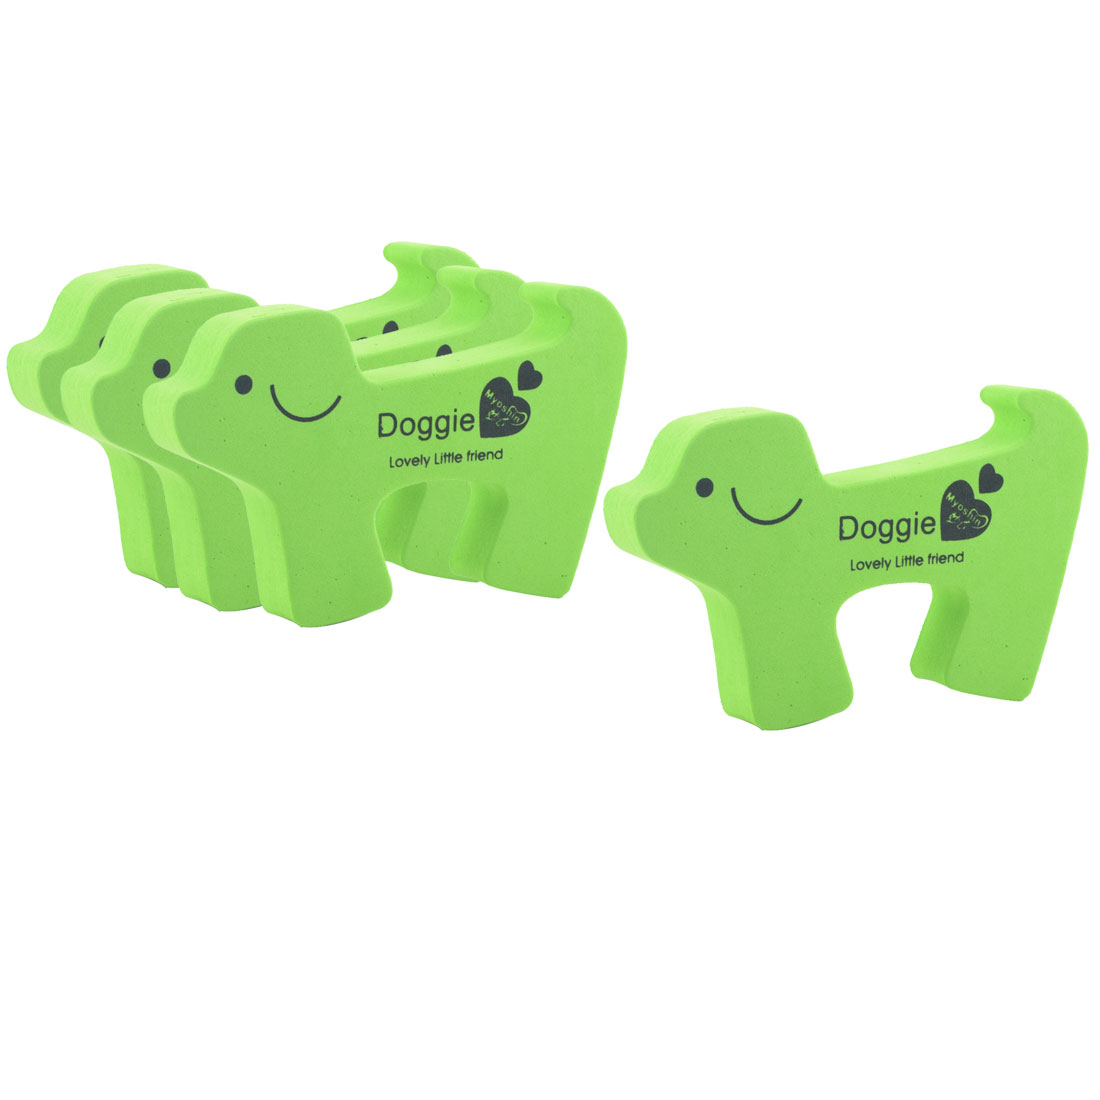 EVA Green Doggie Shape Finger Safety Guard Anti Punch Door Stopper Lock Clip 4pcs